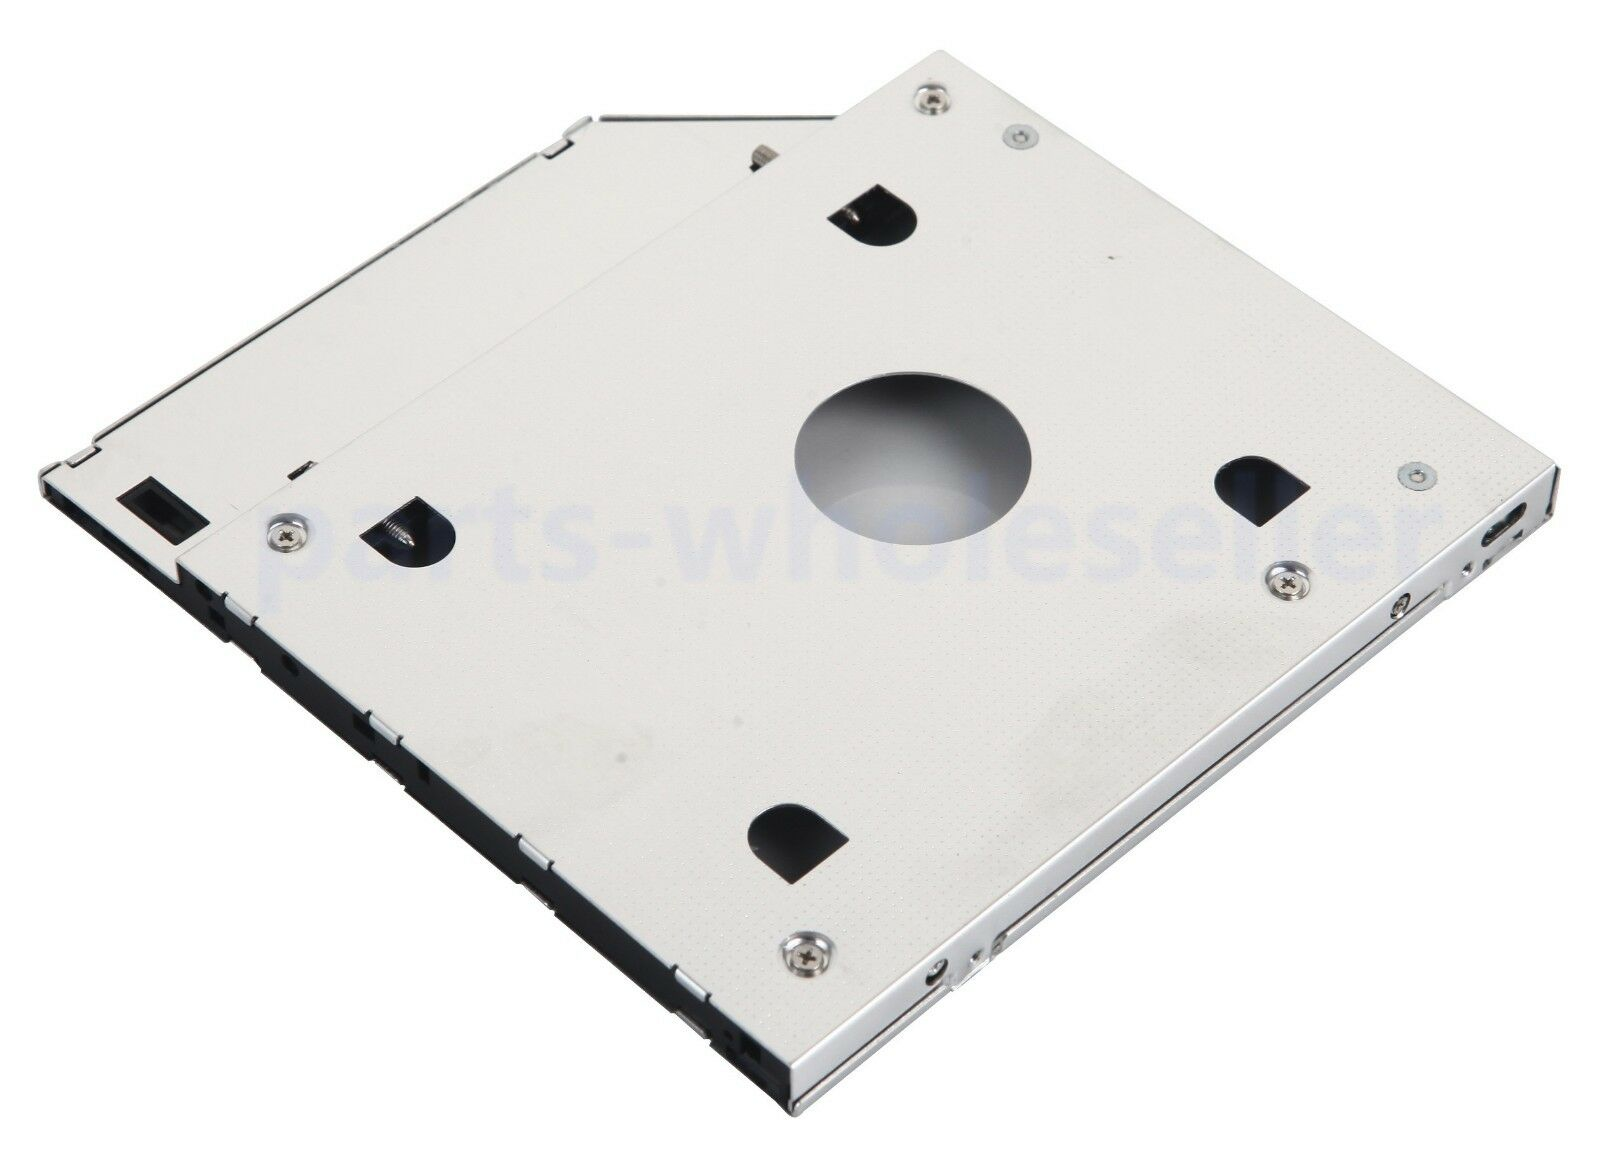 2nd HDD SSD Caddy for Dell Vostro 15 3000 3558 3559 3568 PowerEdge R430 servers